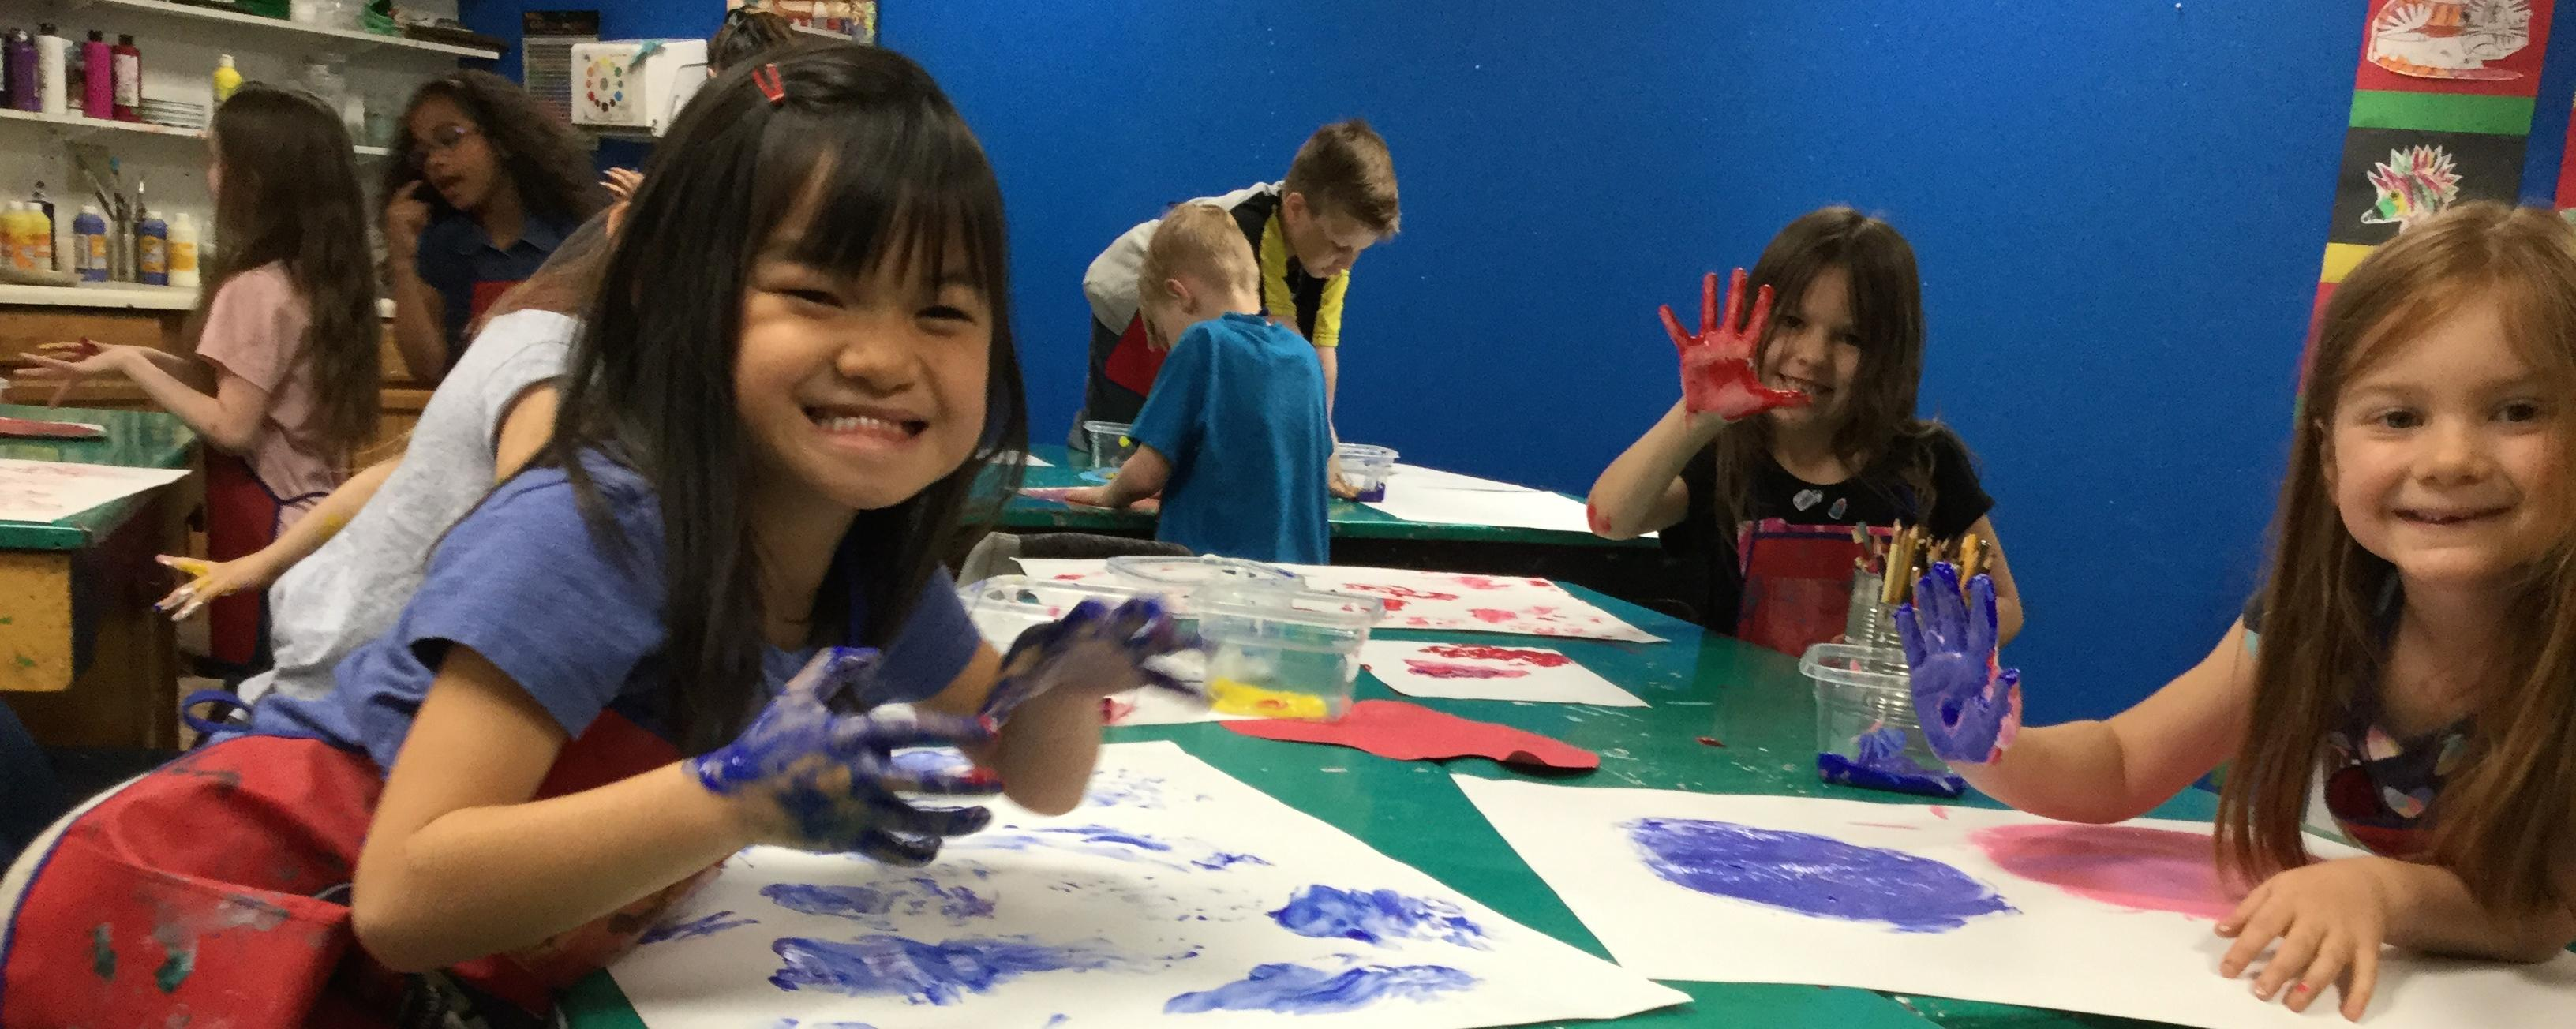 Getting messy in Mrs. Pease's art class